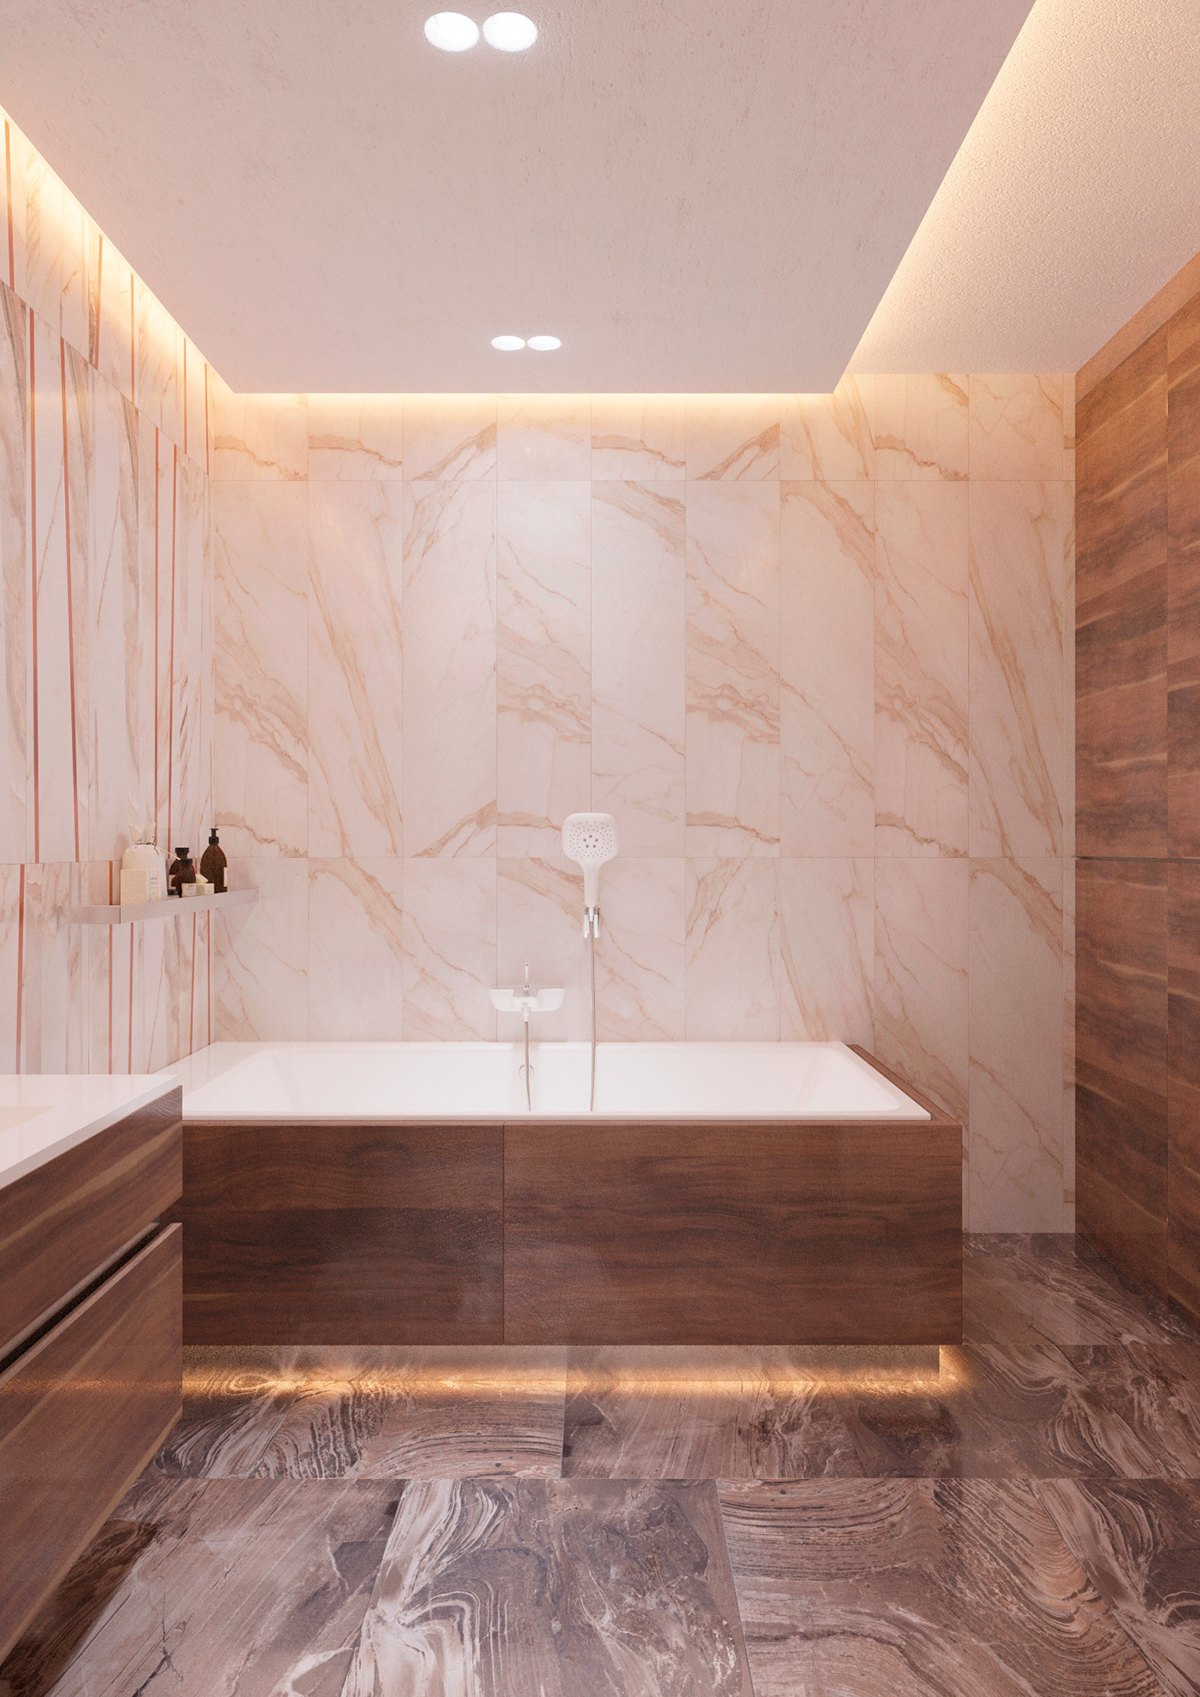 Floating Bathtub Effect - 5 ideas for a one bedroom apartment with study includes floor plans